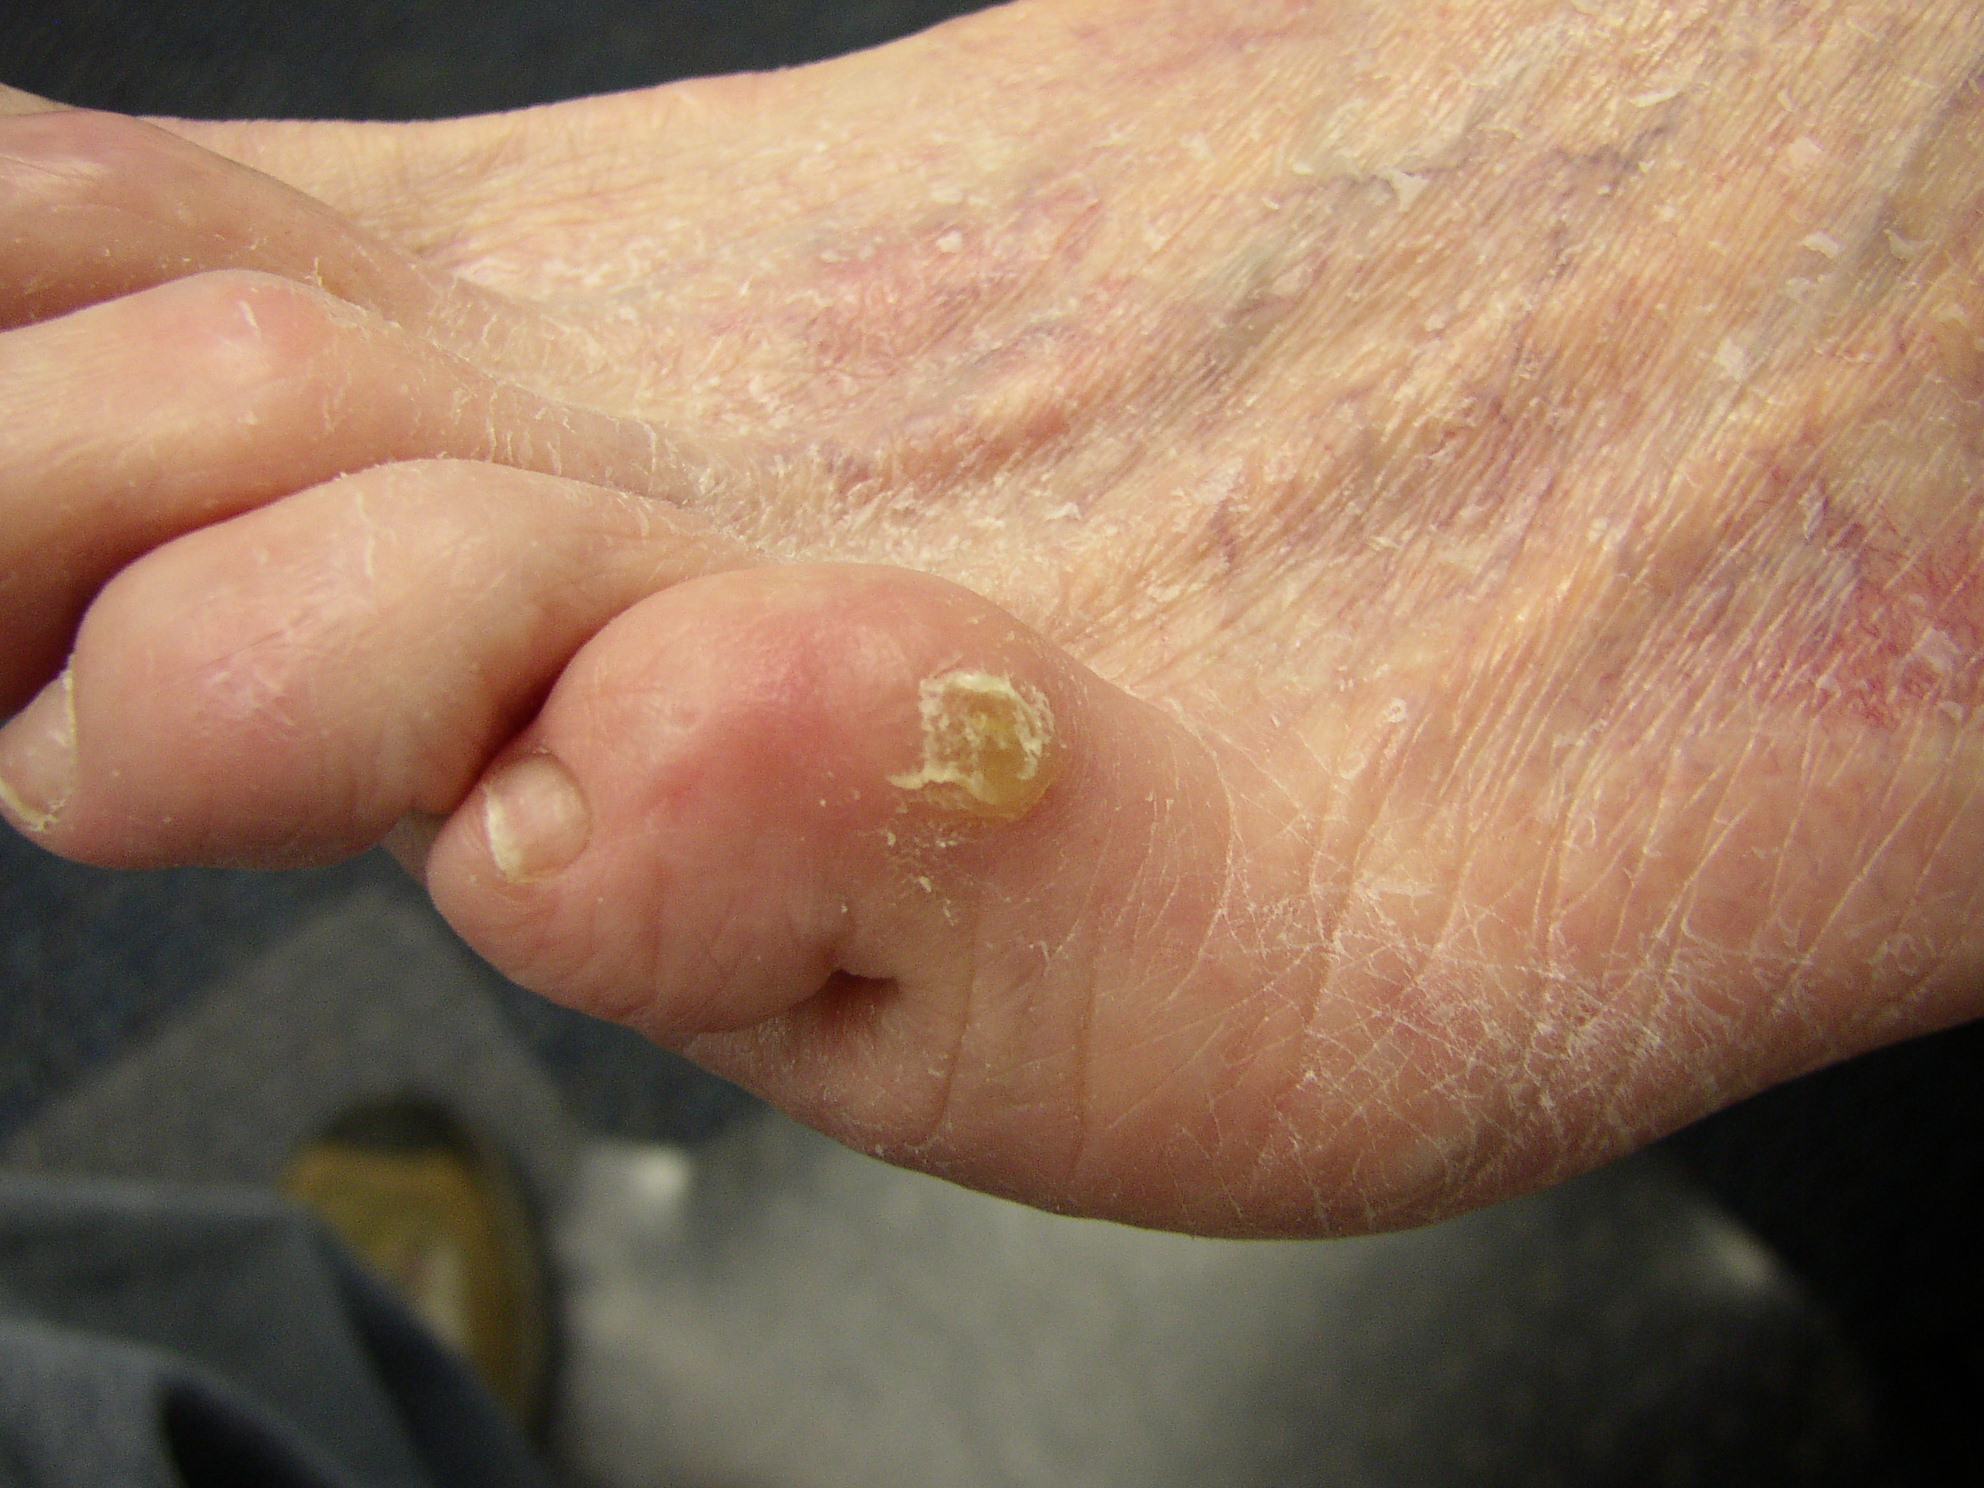 Corns and Calluses. Corn treatment on toes and feet | Patient